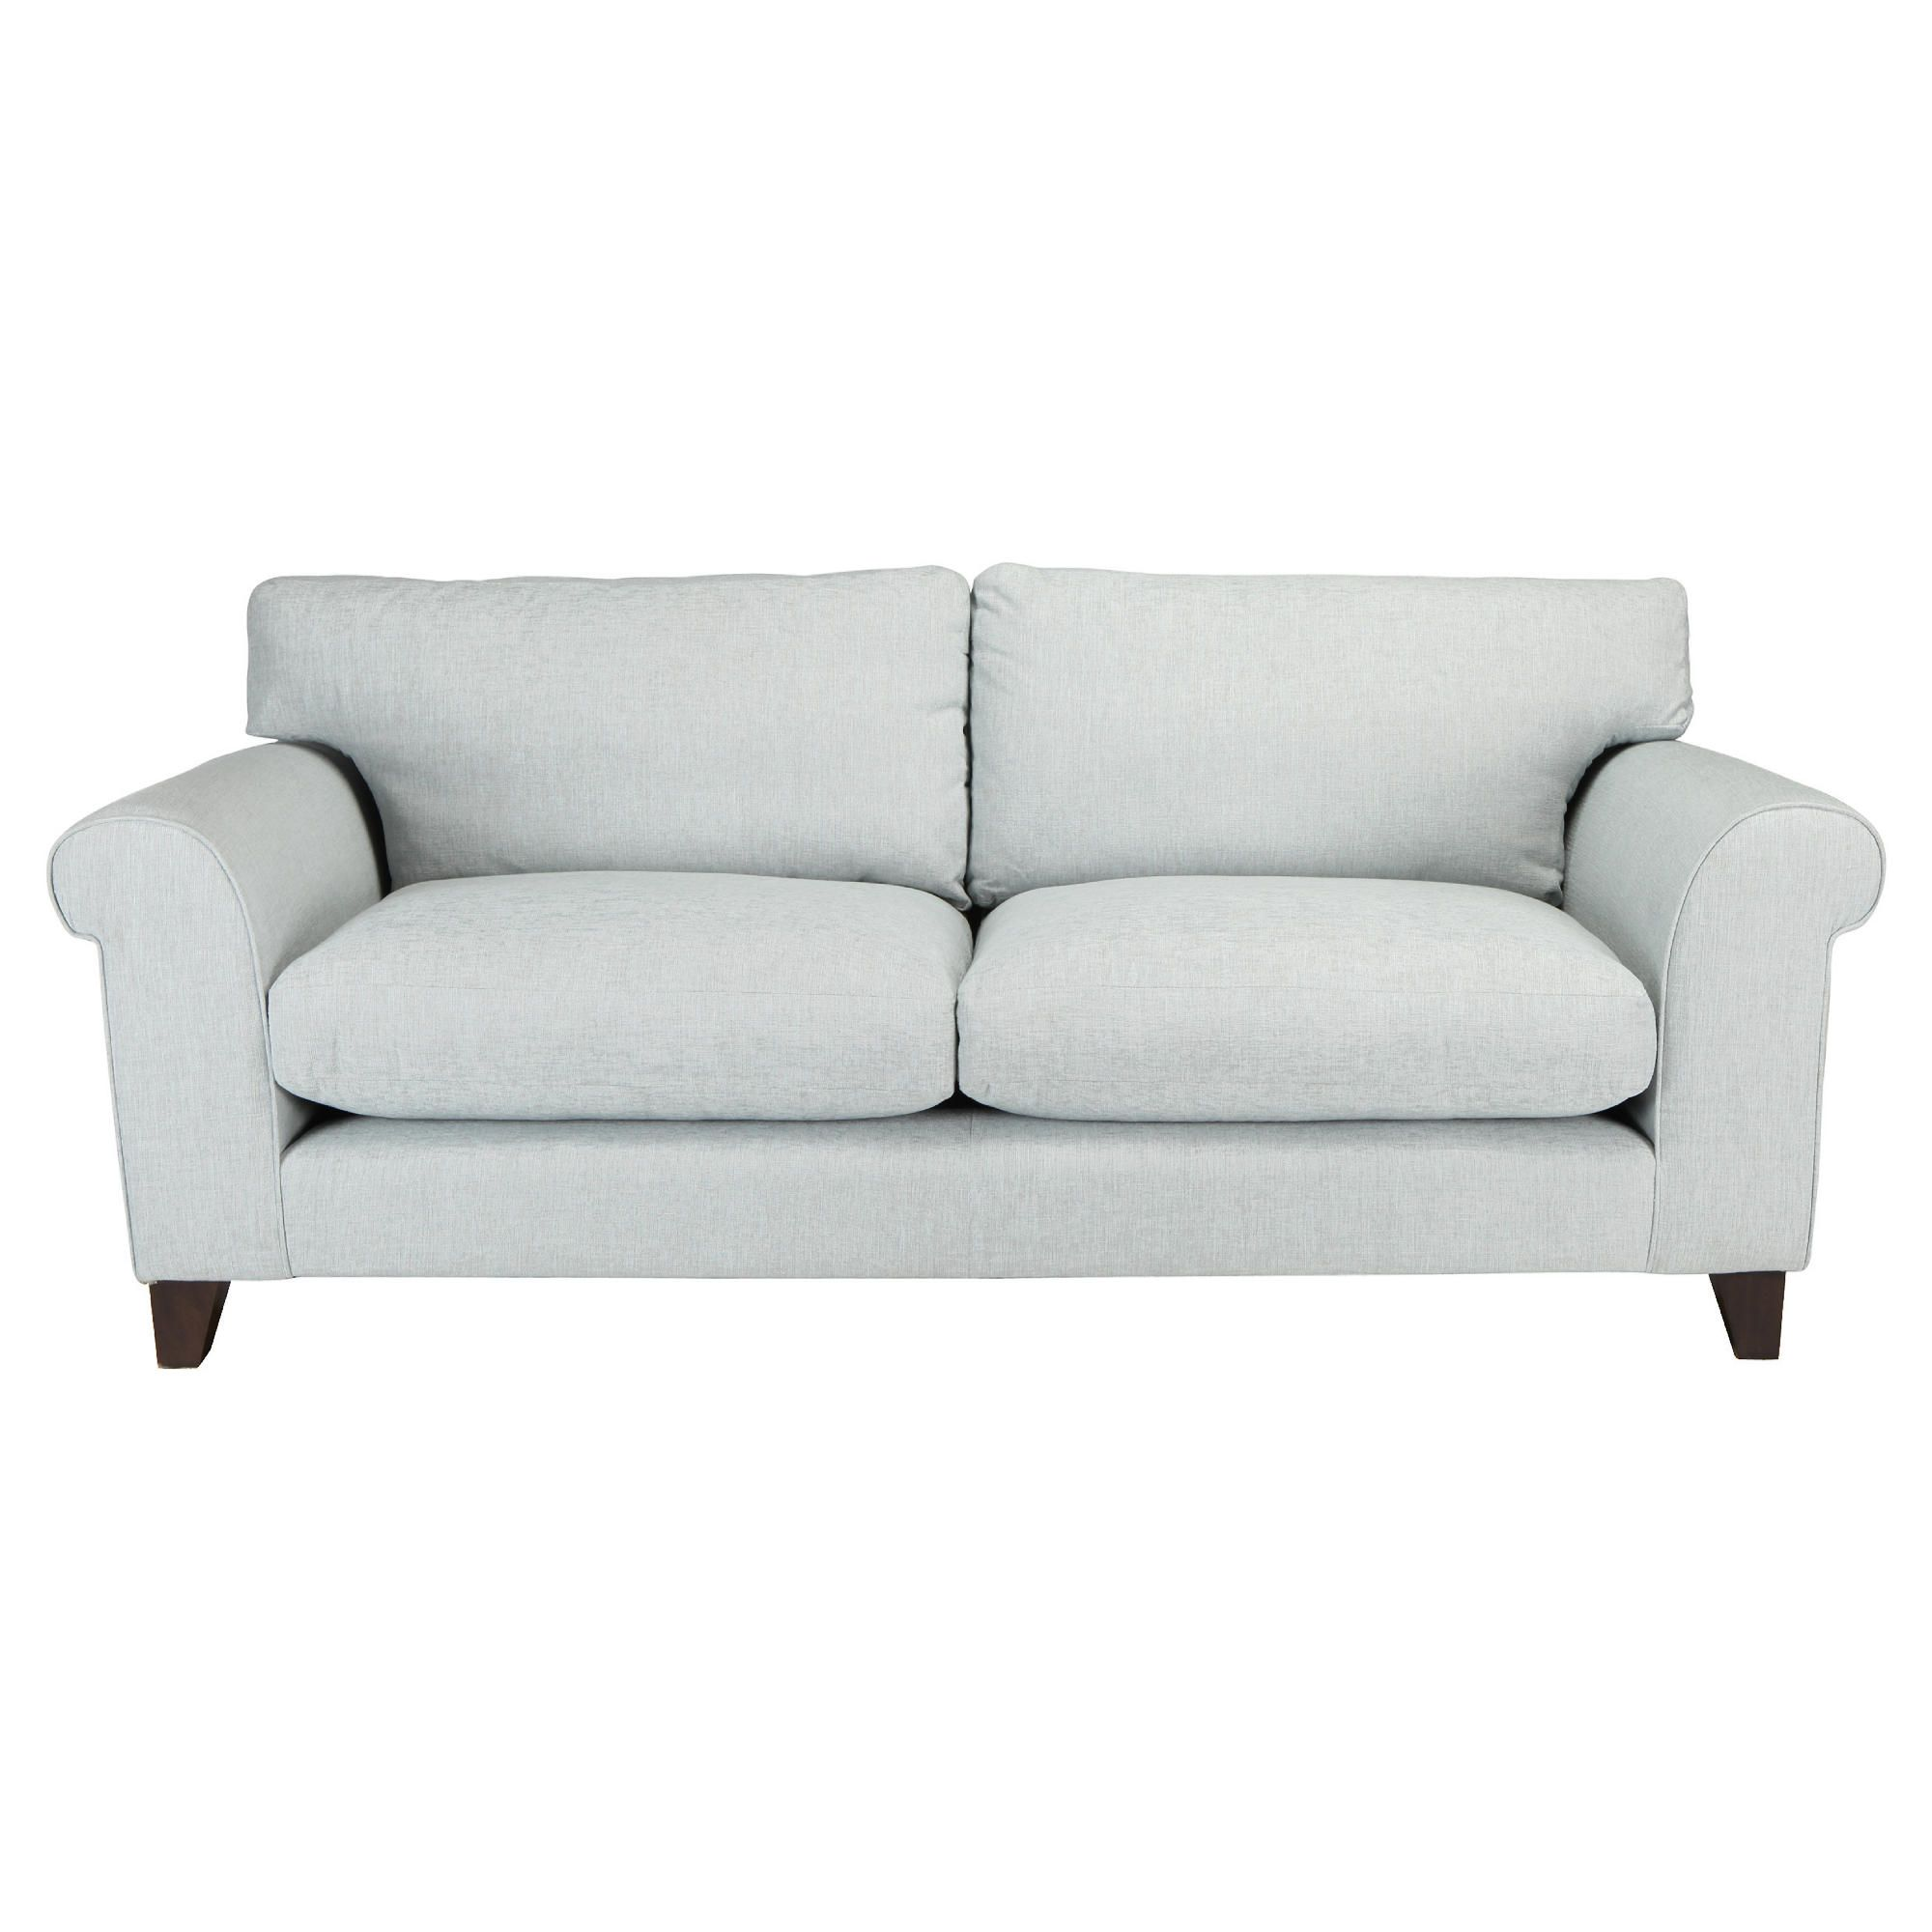 Amersham Large Standard Back Sofa Duck Egg at Tesco Direct